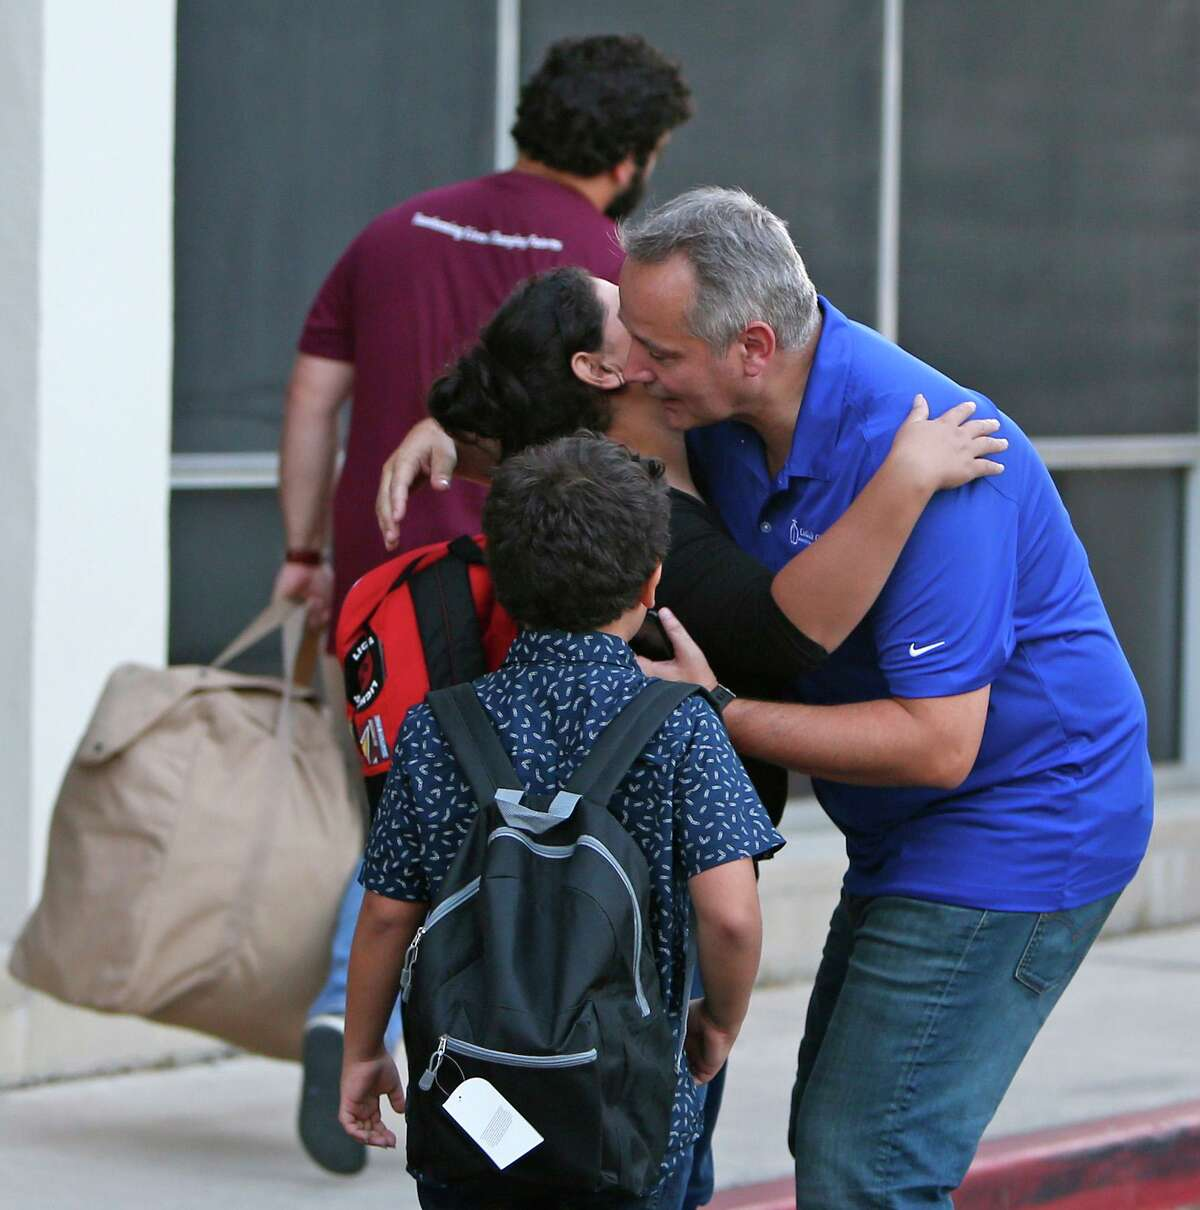 Director of Catholic Charities Antonio Fernandez says goodbye to an immigrant family outside of Catholic Charities in 2018. Fernandez and his team are preparing for an increase of refugees under the Biden administration.